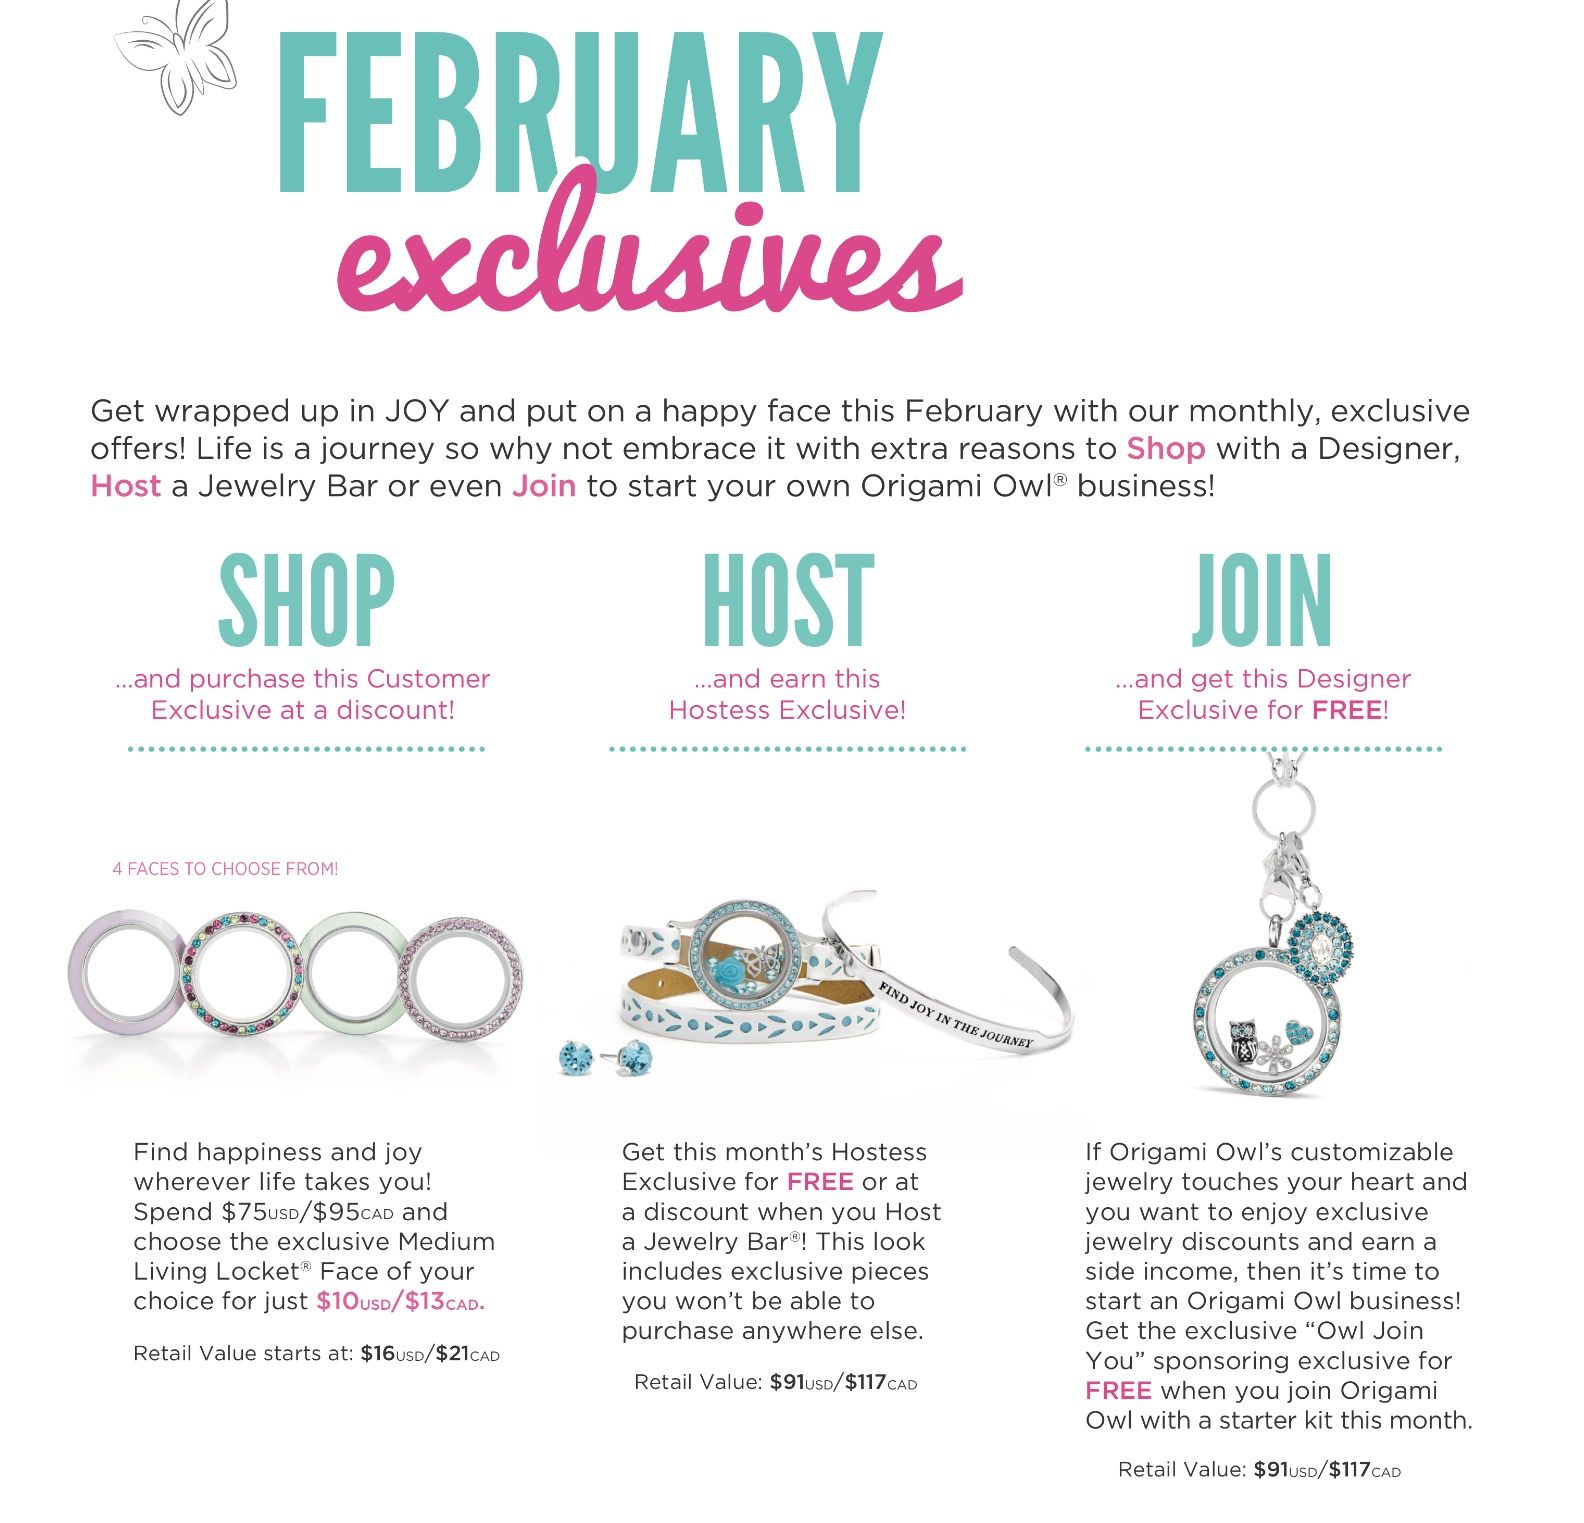 Origami owl feb 2017 exclusive offers take advantage while they last www